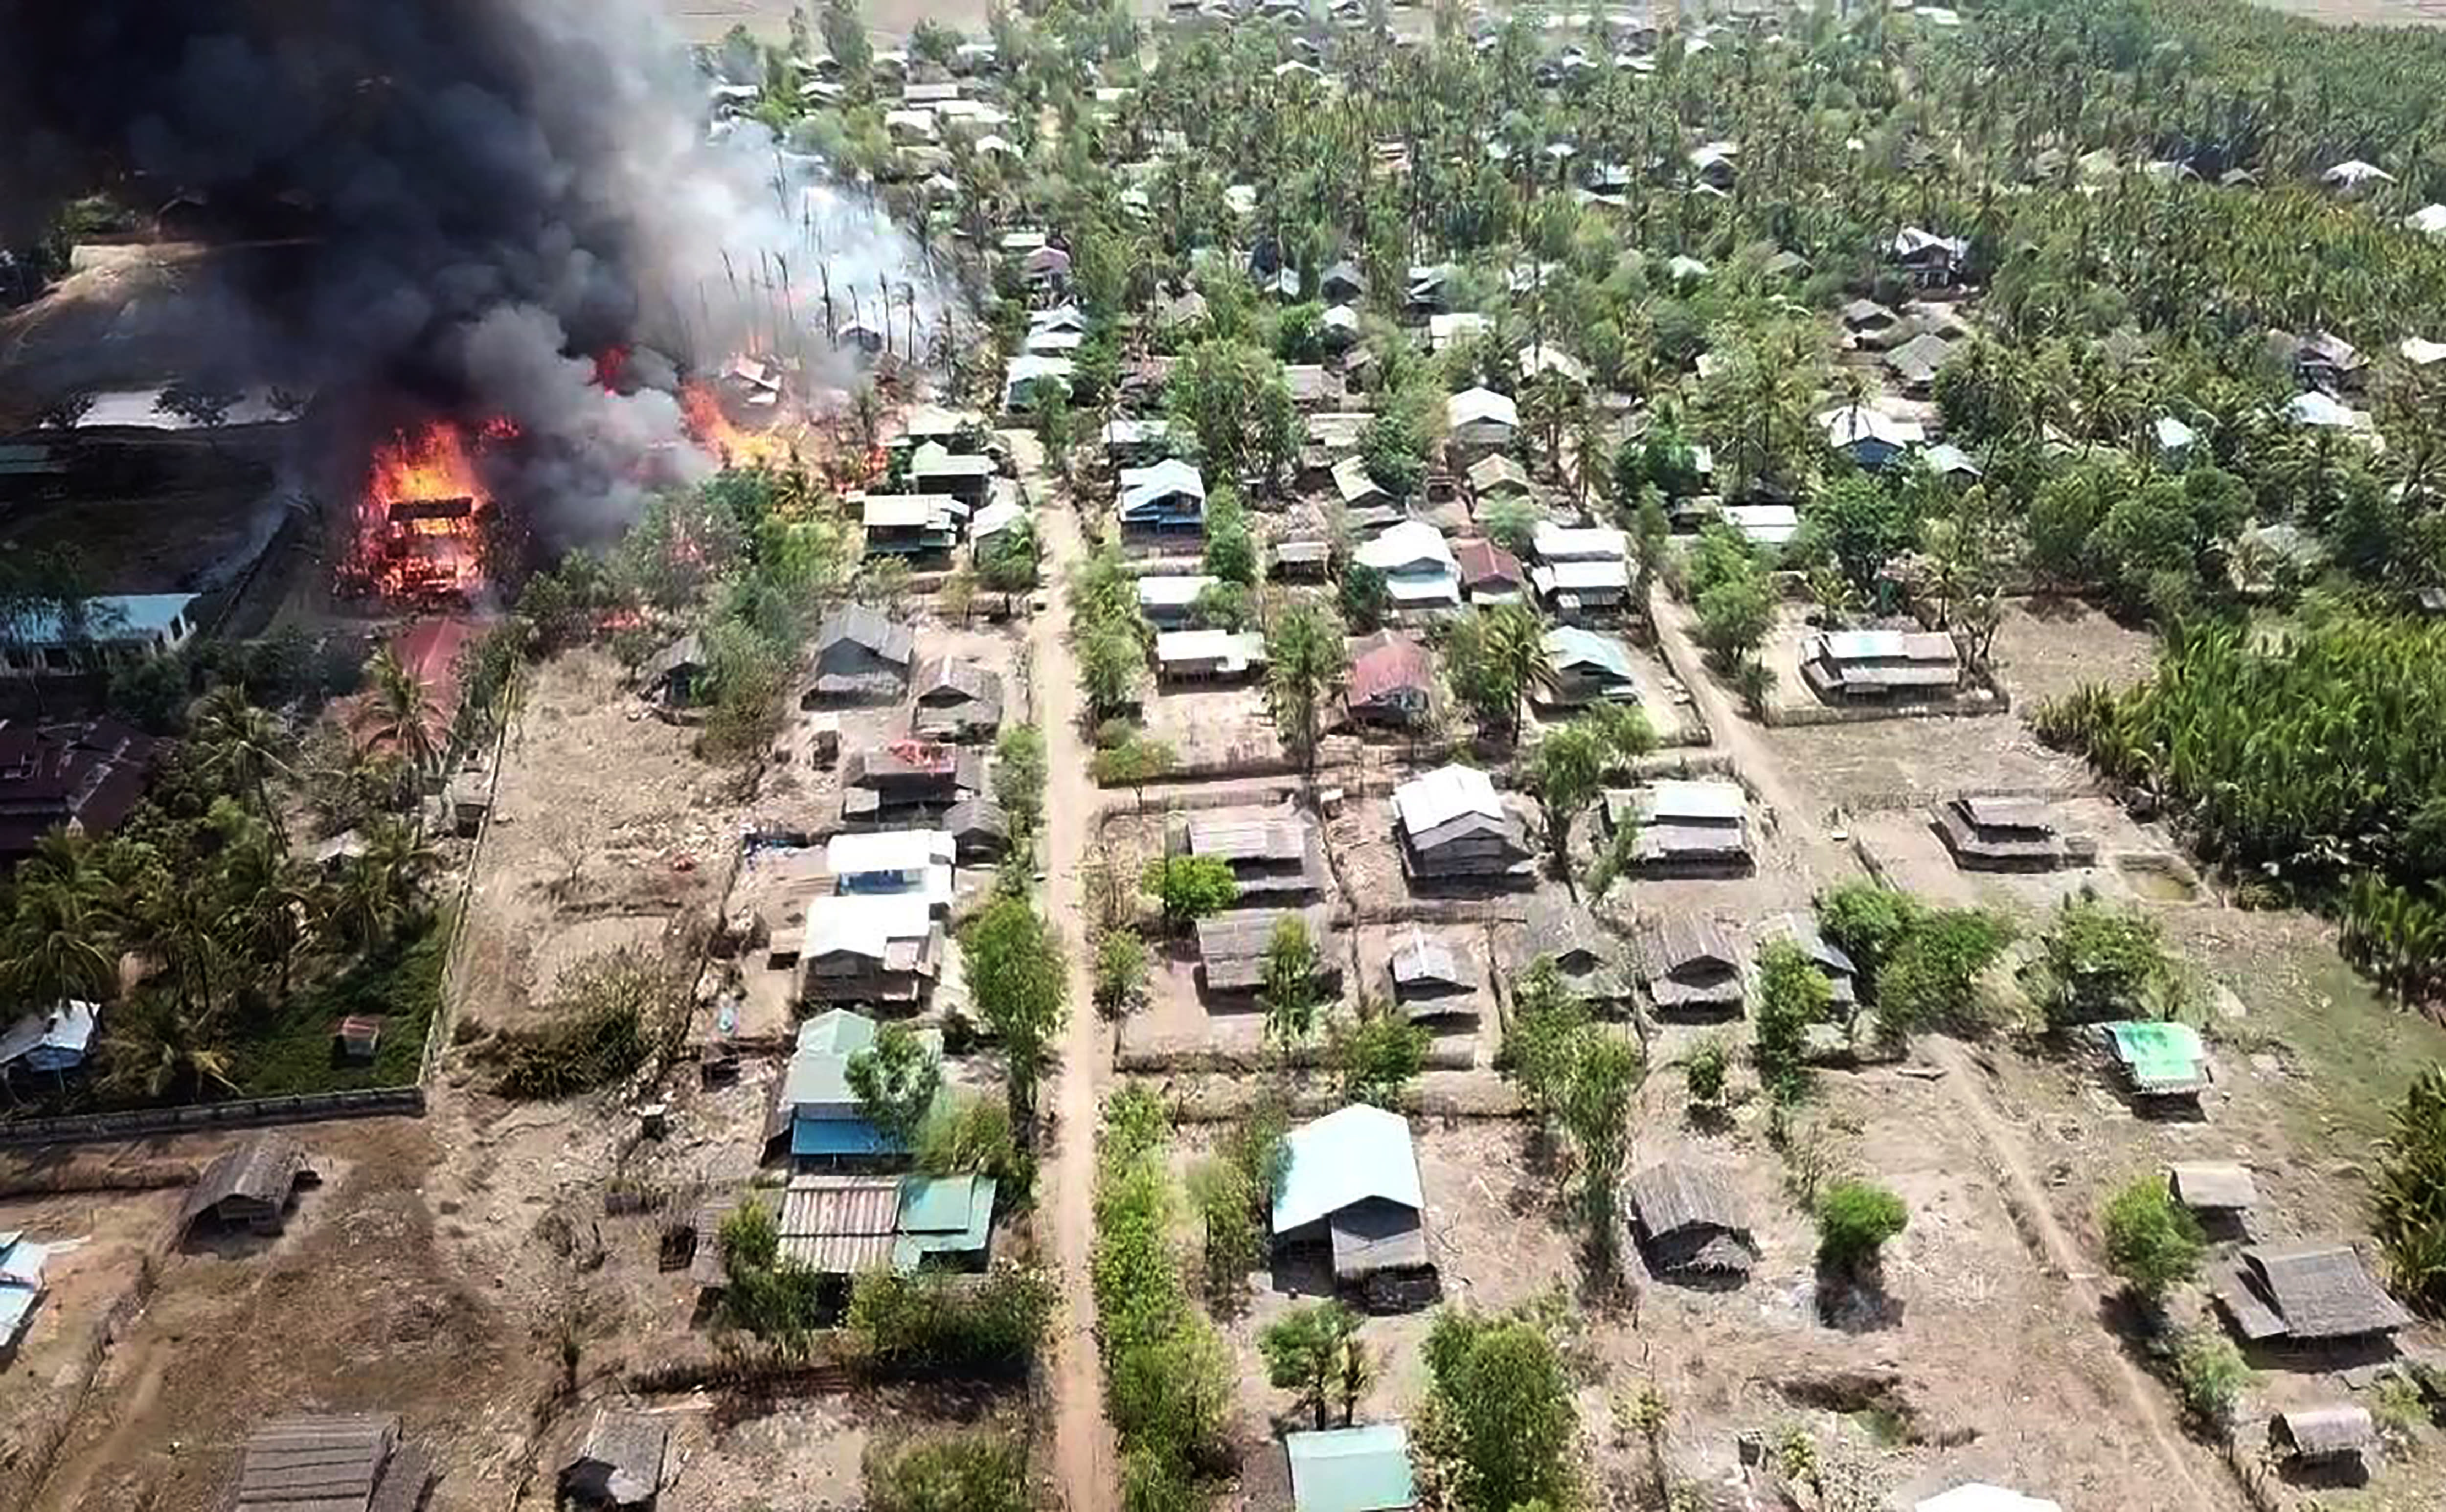 In this photo released by the Myanmar Army, a fire burns May 16, 2020, in the predominantly ethnic Rakhine village of Let Kar in Rakhine State's Mrauk-U township, western Myanmar. The Rakhine areas since January last year has been the scene of bitter armed conflict between the government and the Arakan Army, a guerrilla force of the Rakhine ethnic minority seeking greater autonomy for the state. (Myanmar Army via AP)